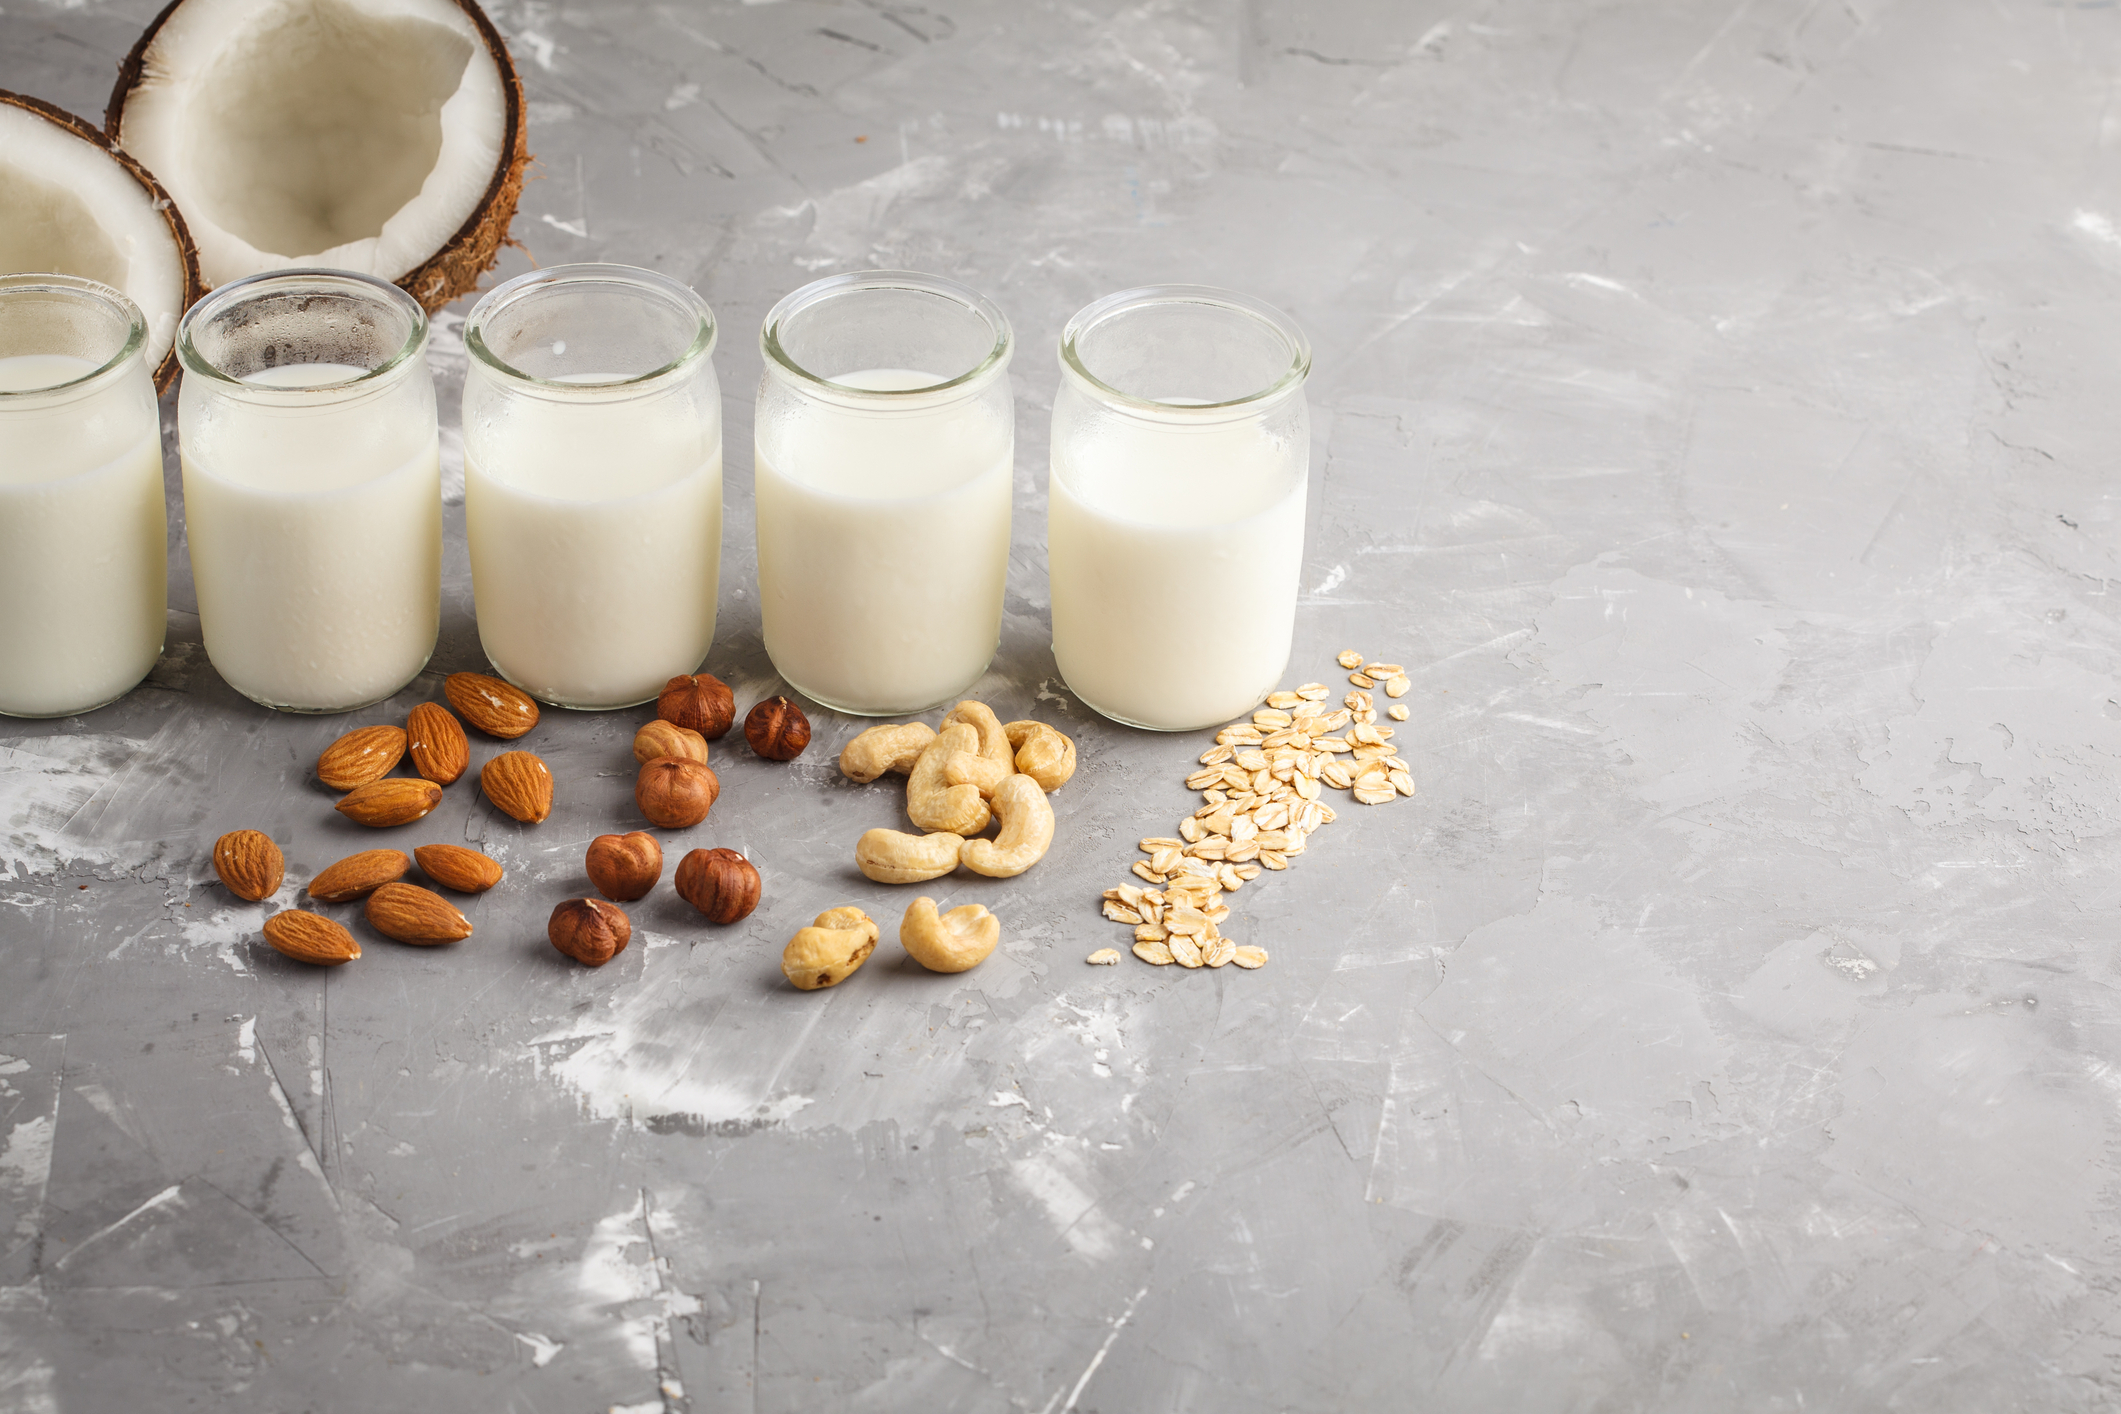 How to Make Nut Milk | Dairy-Free, No Additives or Preservatives